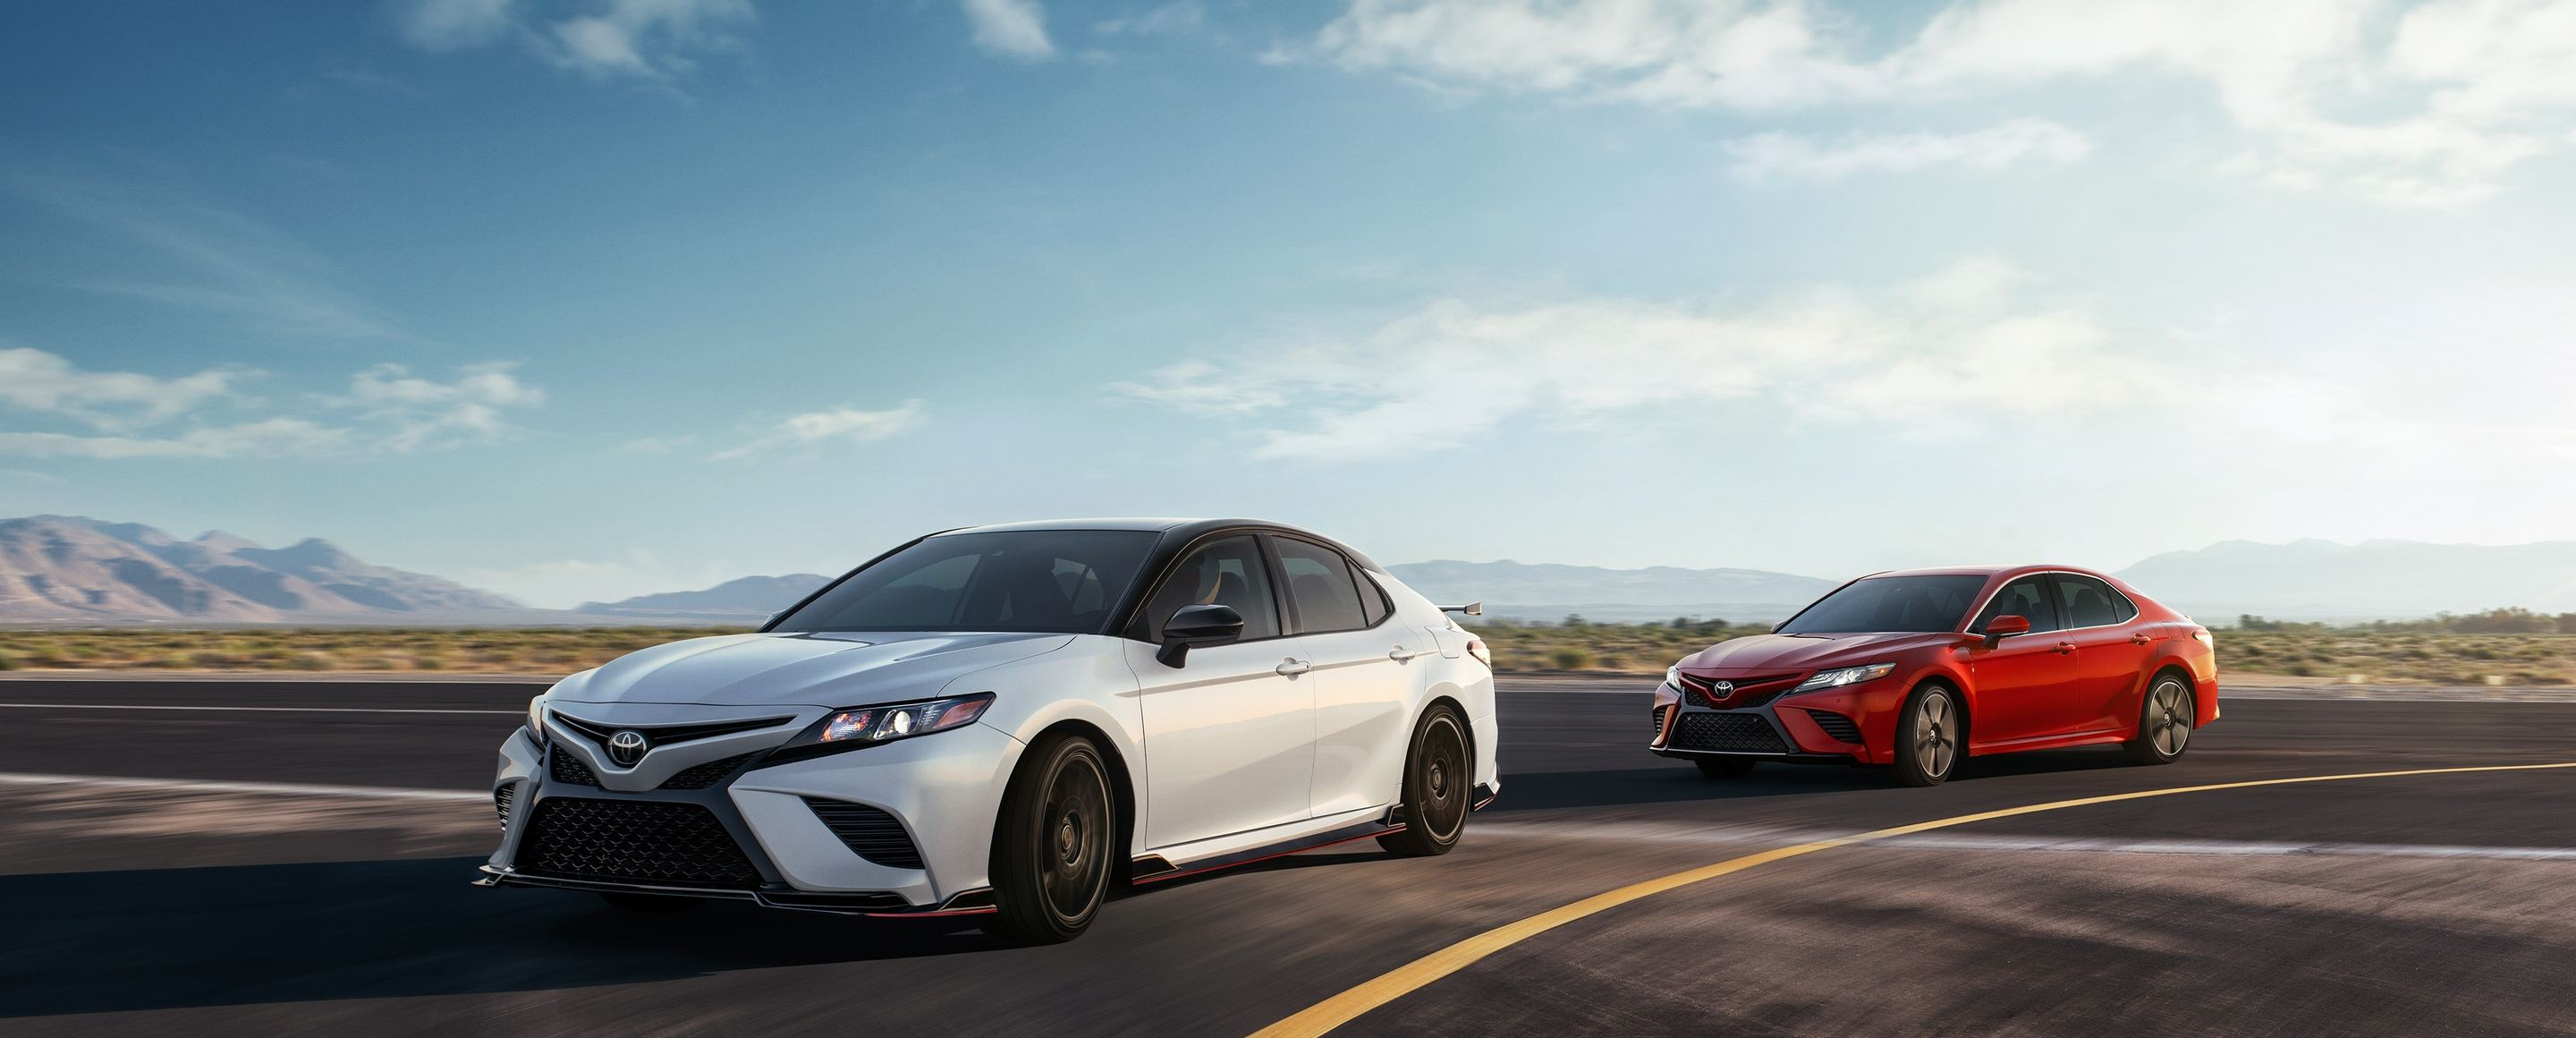 2020 Toyota Camry for Sale near Pittsburgh, PA